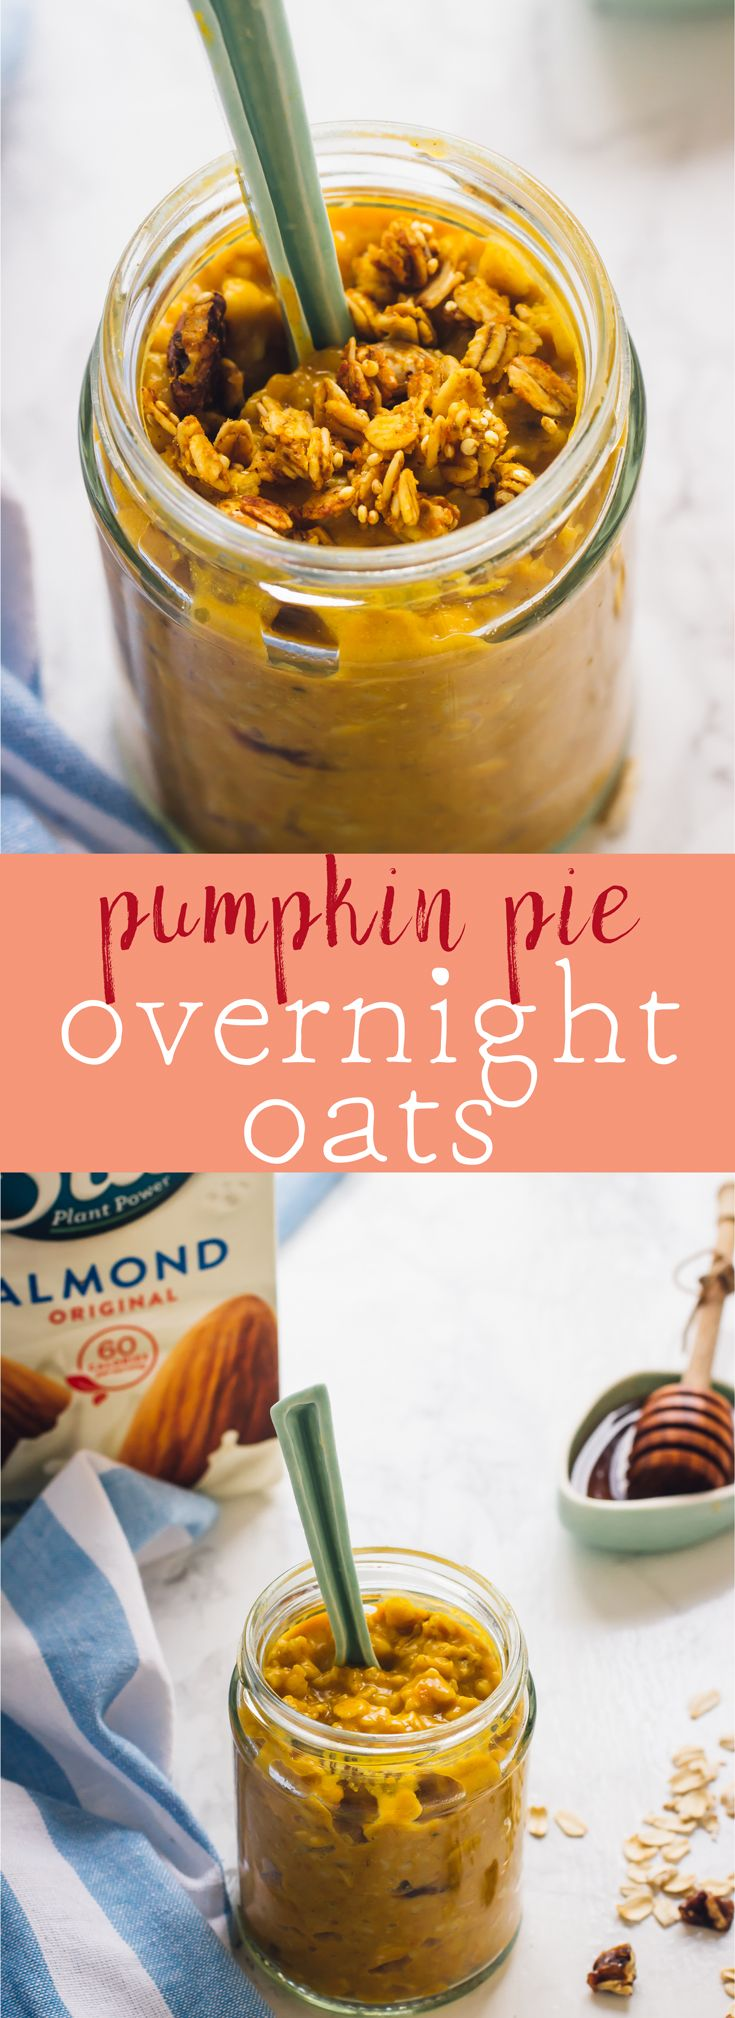 These Pumpkin Pie Overnight Oats are your easiest breakfast ever! They require only 5 minutes of prep and are delicious, filling and so nutritious! via http://jessicainthekitchen.com